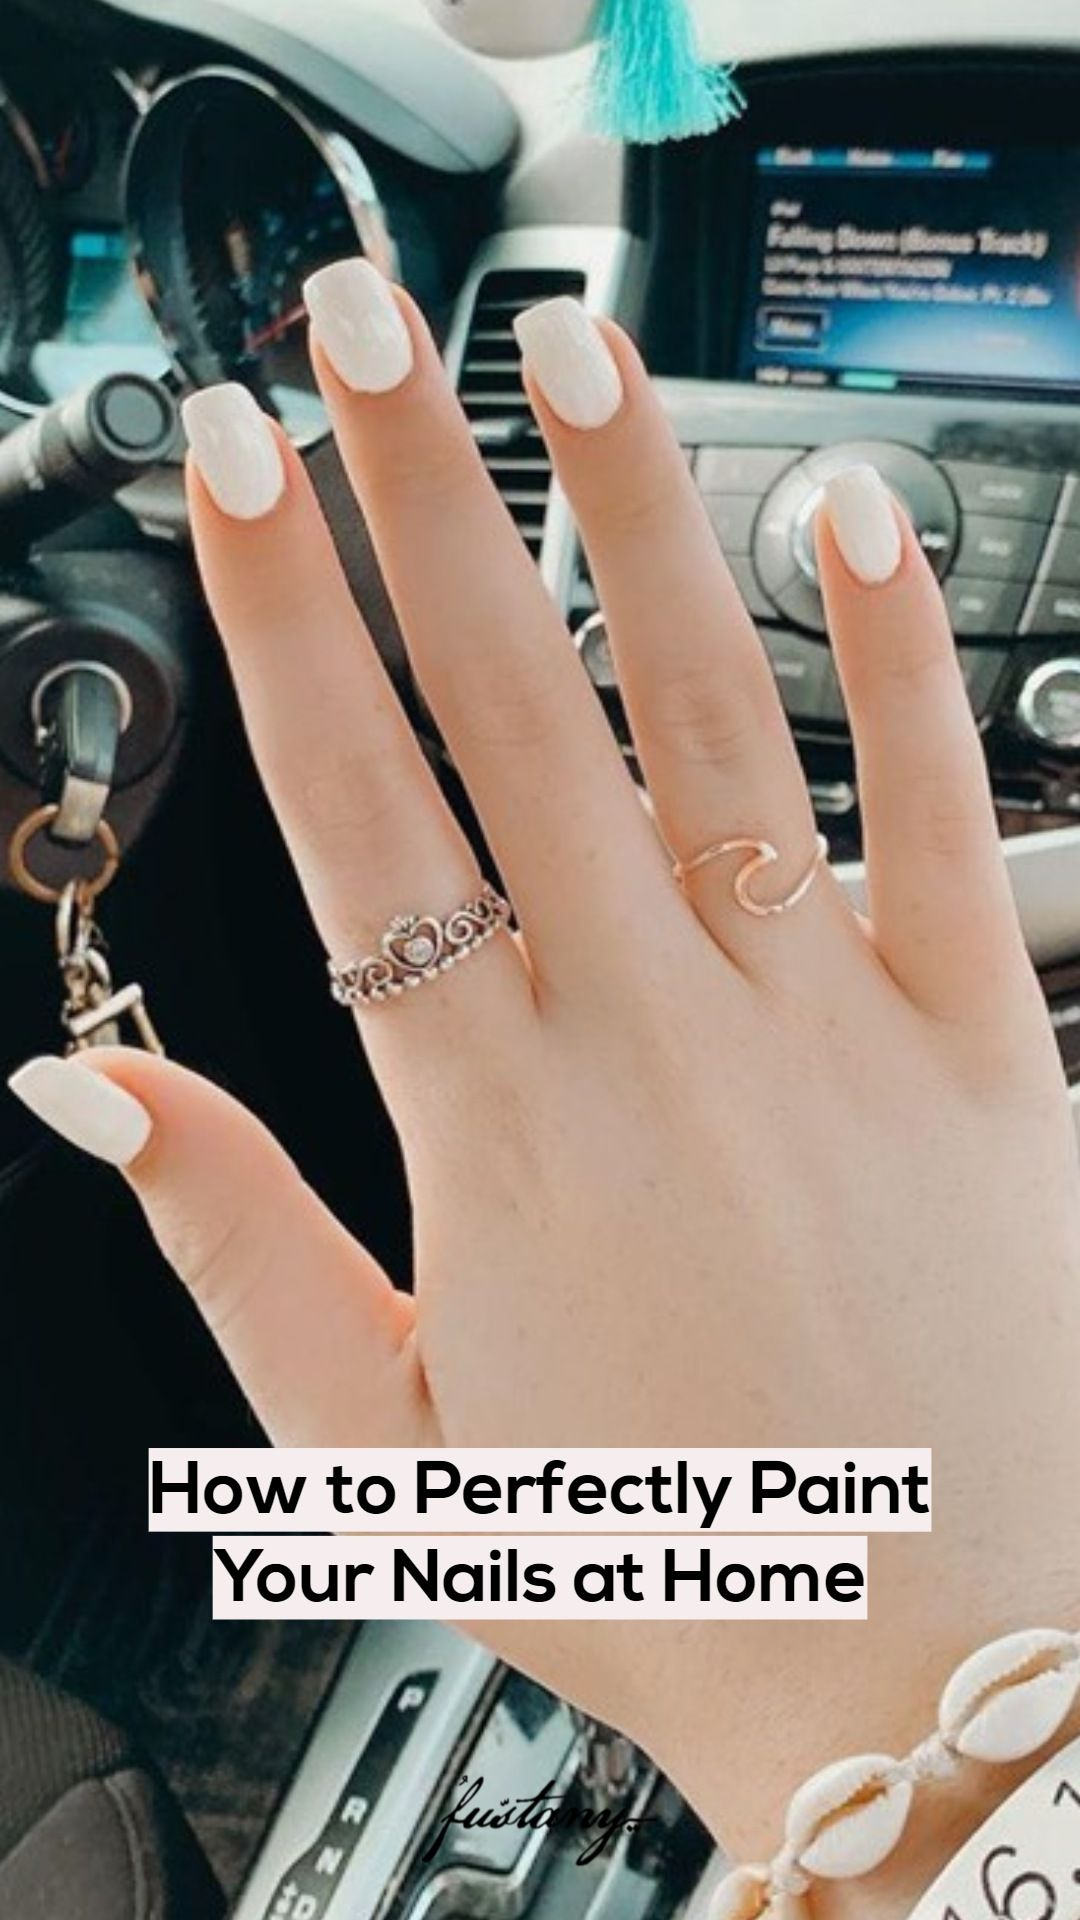 How to perfectly paint your nails at home nails at home